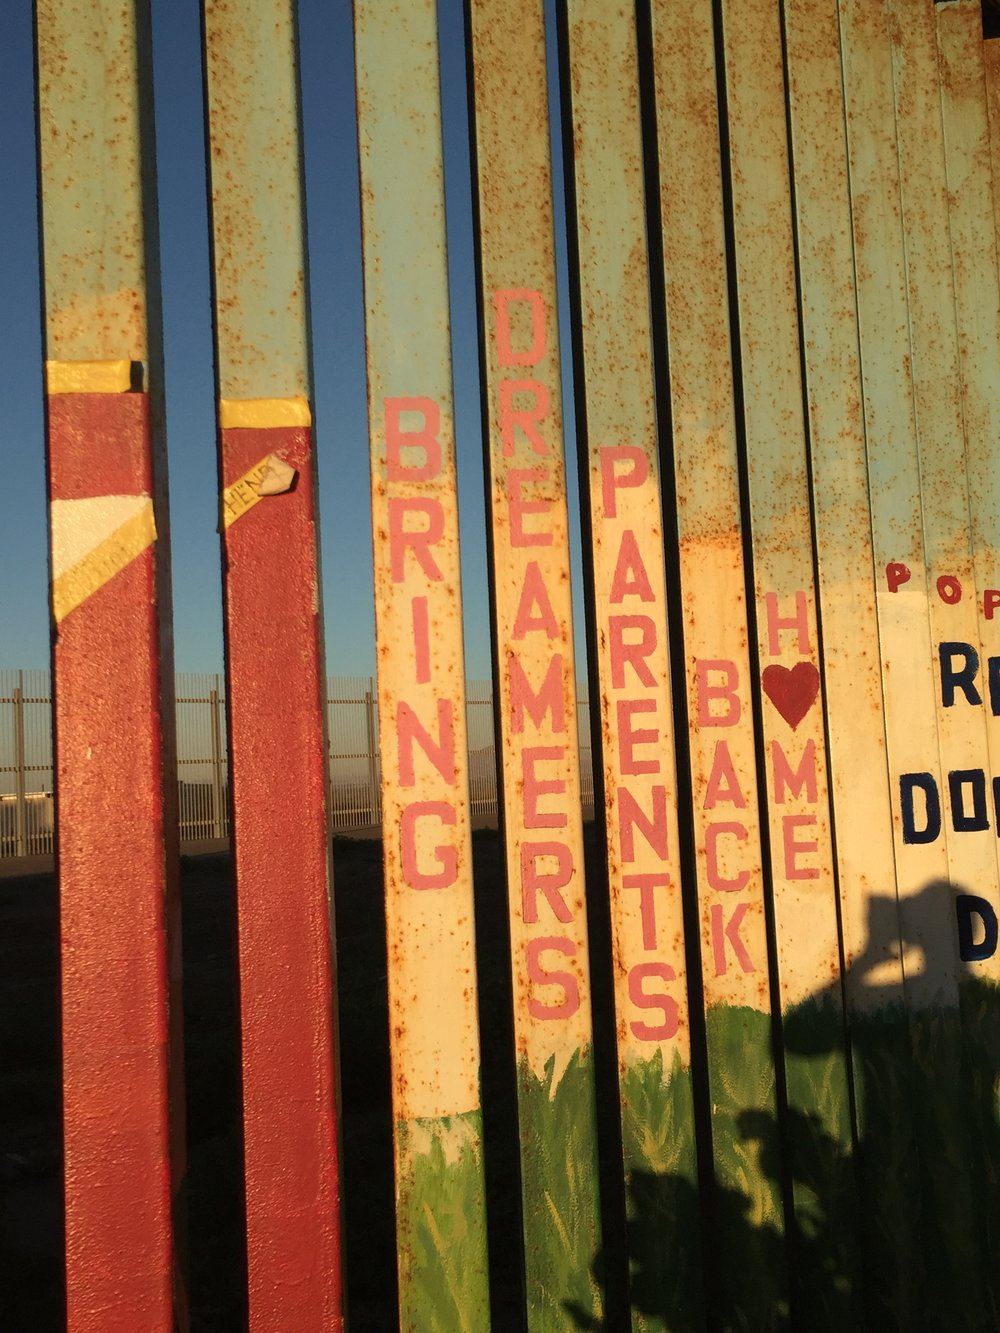 The Southern Border from the Mexican side. Nov. 2016. Credit: AJ Joven